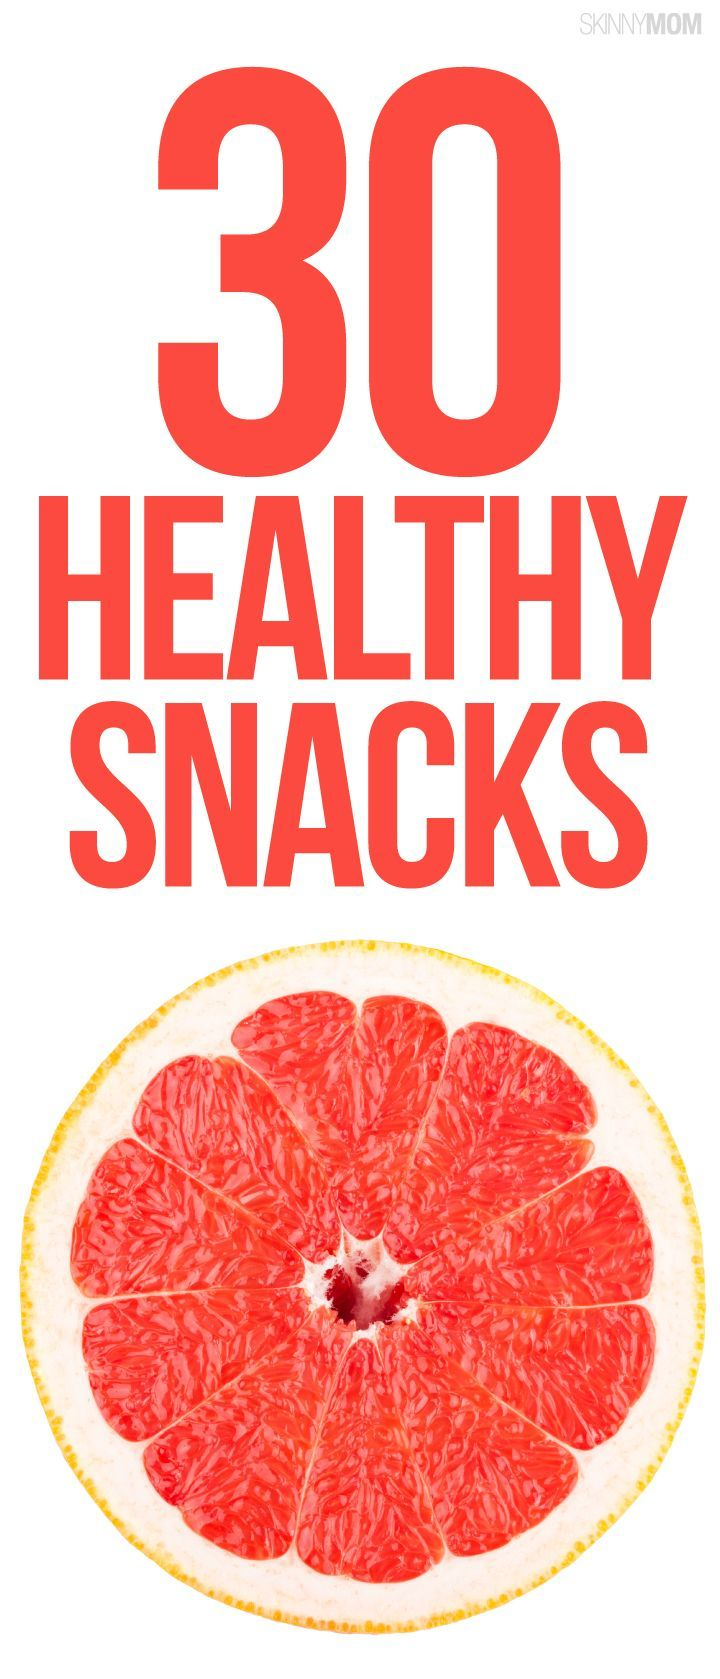 Have healthy snacks every day of the month.